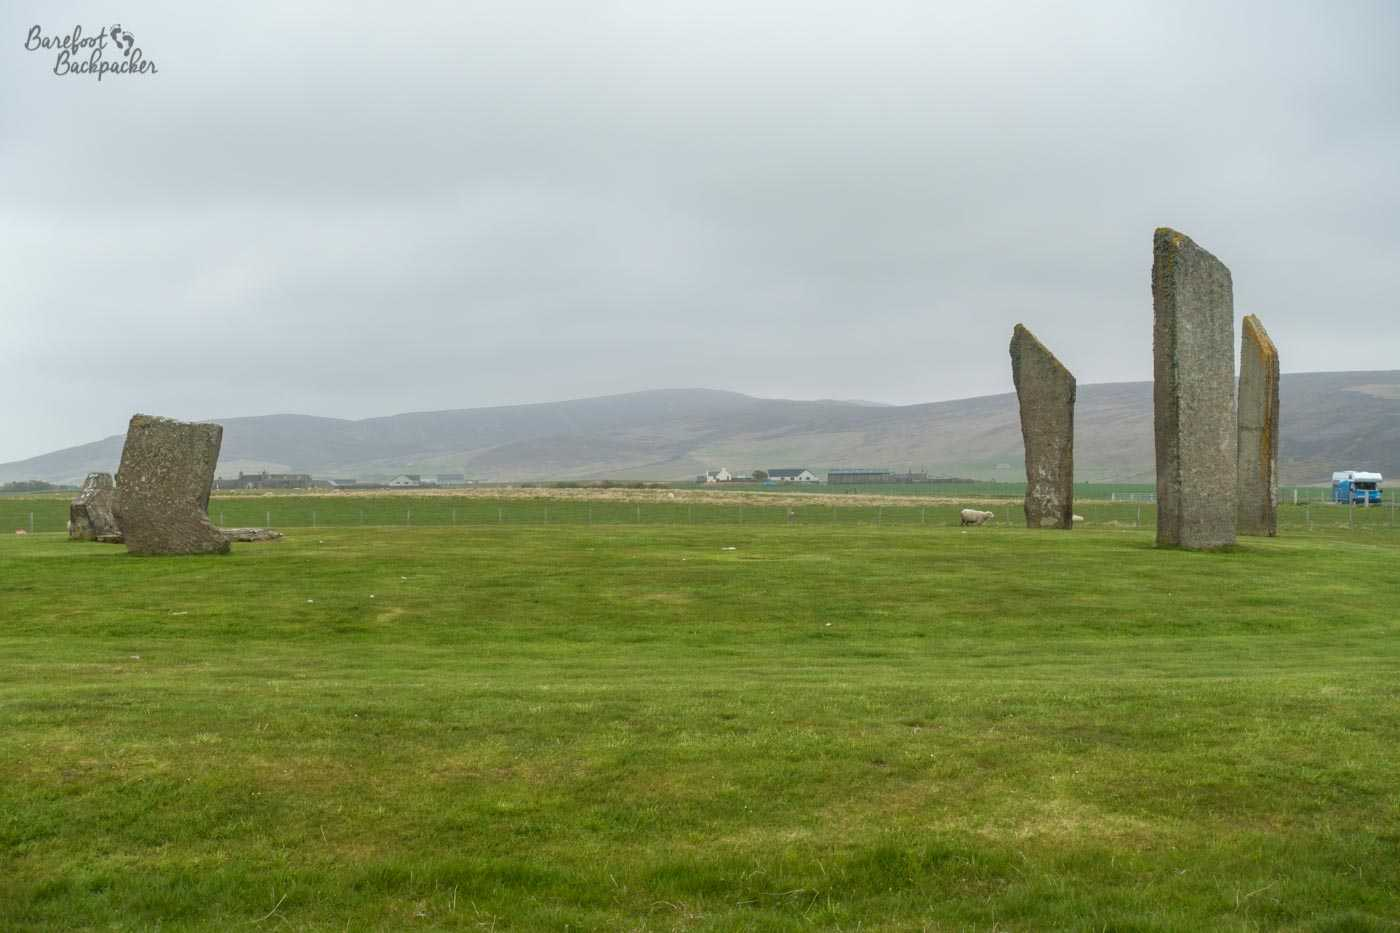 Three tall stones stand in a field, to the right of the image, while on the left are the stumps of two smaller ones. In the distance are farmhouses and hills. A sheep is poking around a couple of the larger stones.